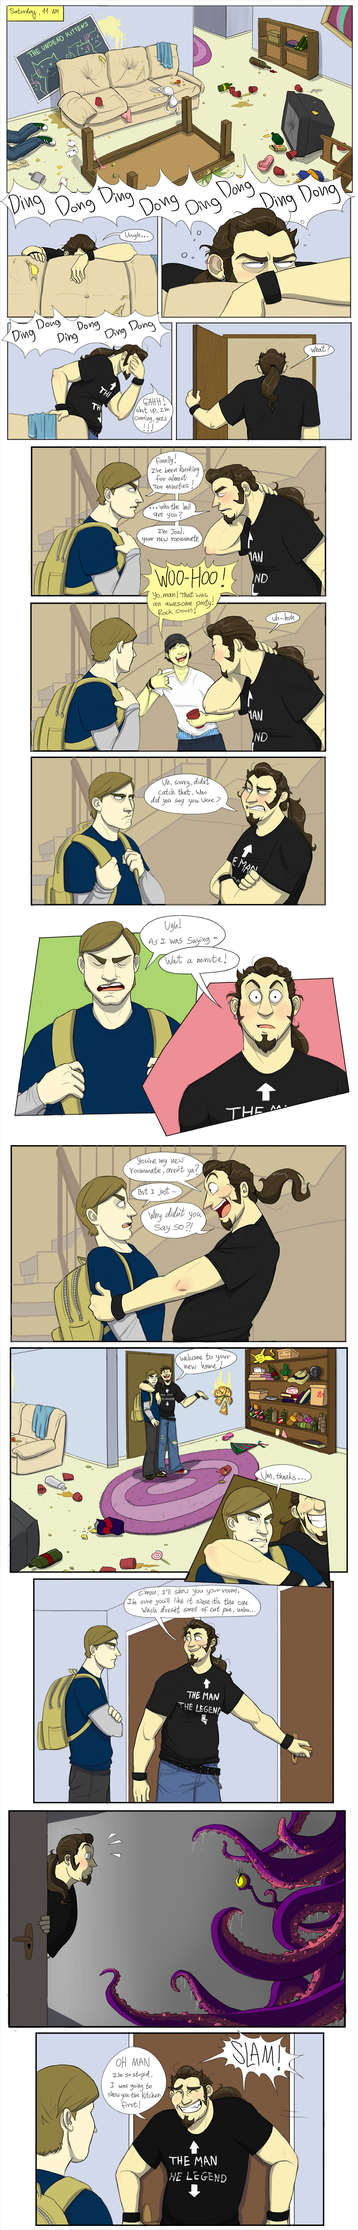 JTG: chapter 1 page 1 by gilll